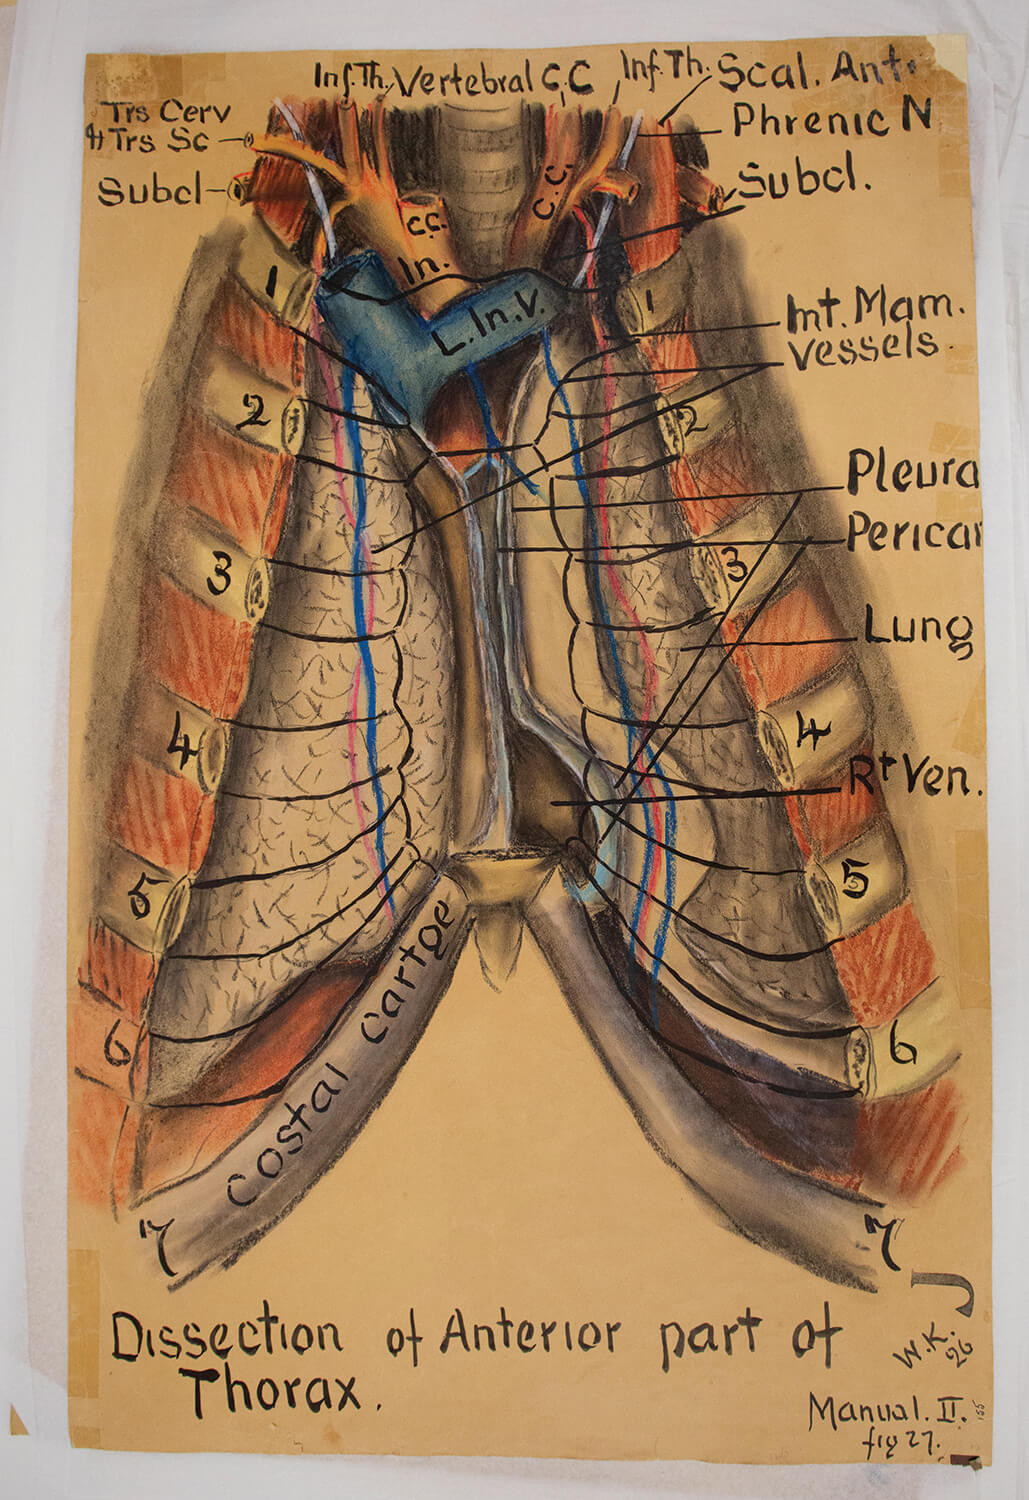 Keiller drew anatomical images from experience in the medical field and observations of the human body.